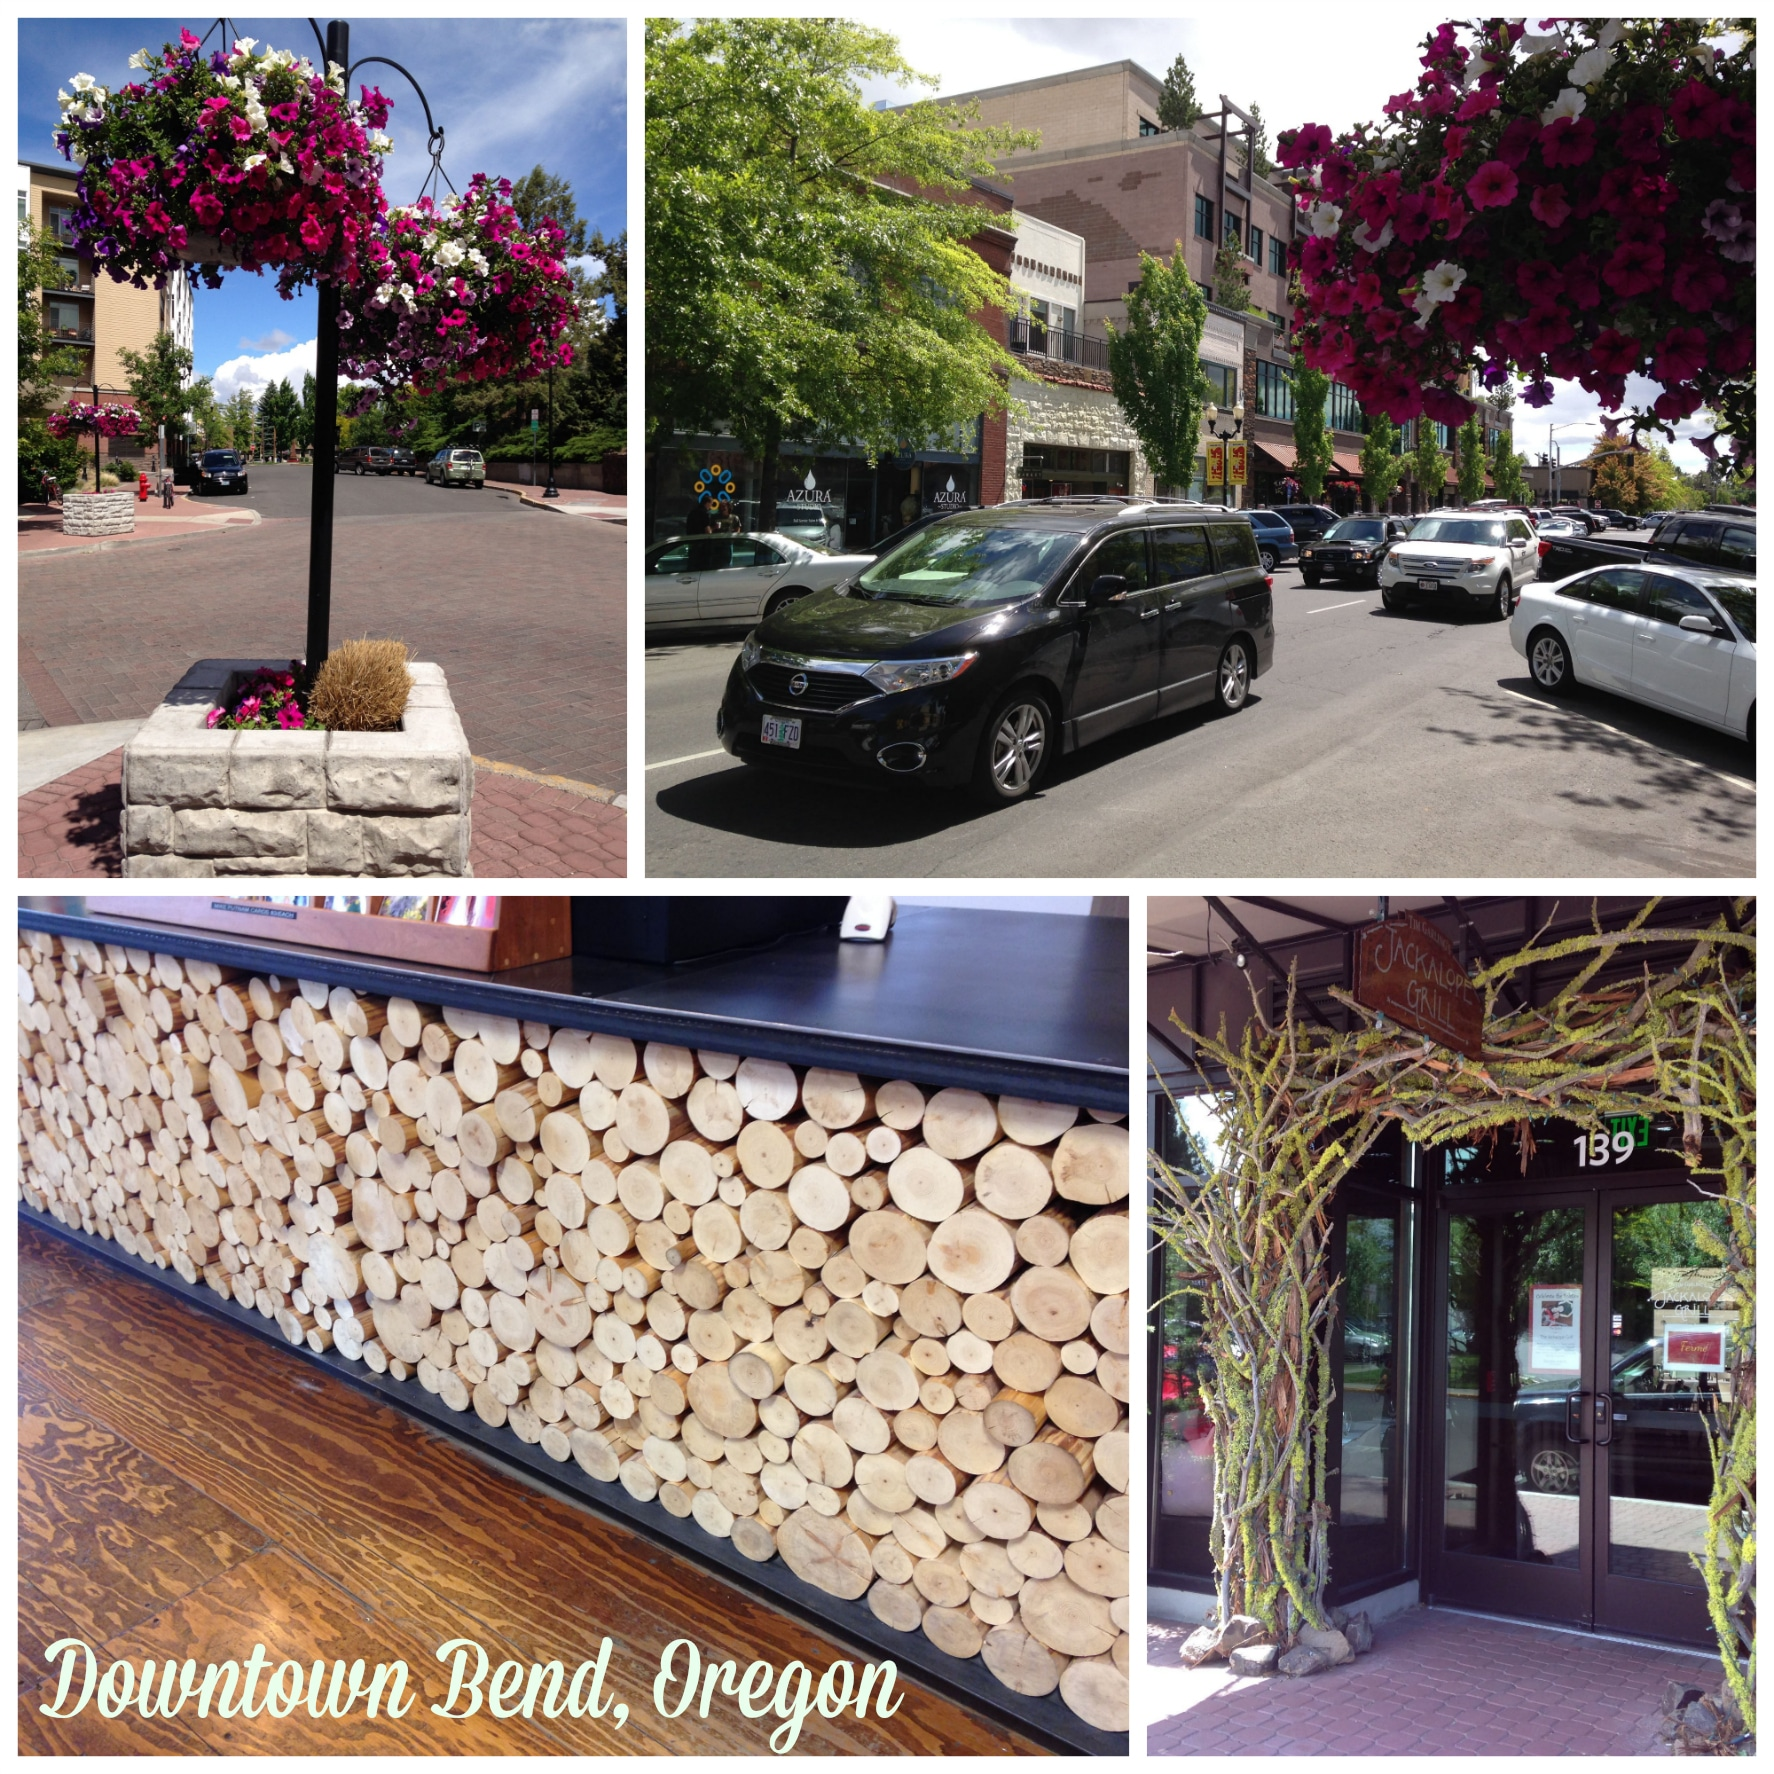 Downtown Bend, Oregon